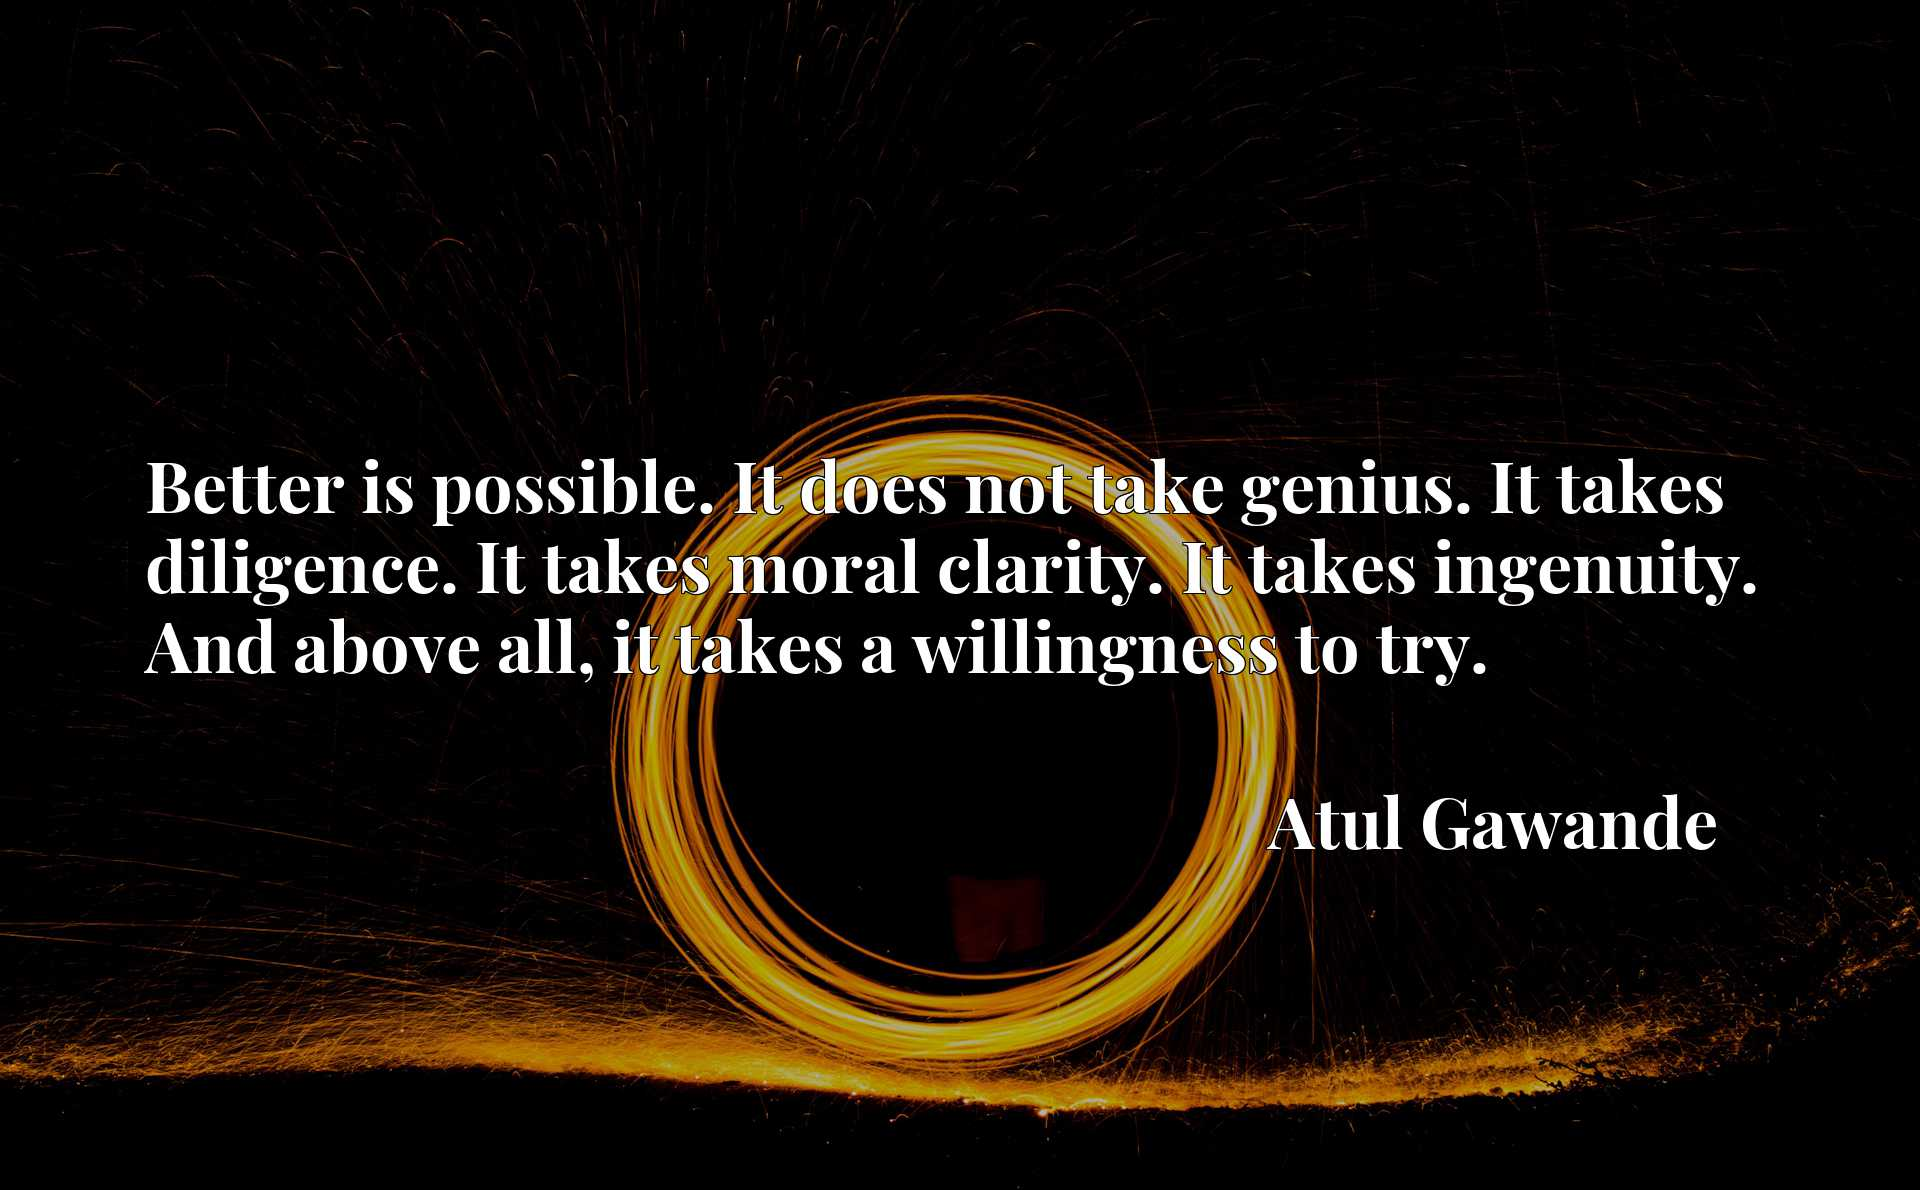 Better is possible. It does not take genius. It takes diligence. It takes moral clarity. It takes ingenuity. And above all, it takes a willingness to try.